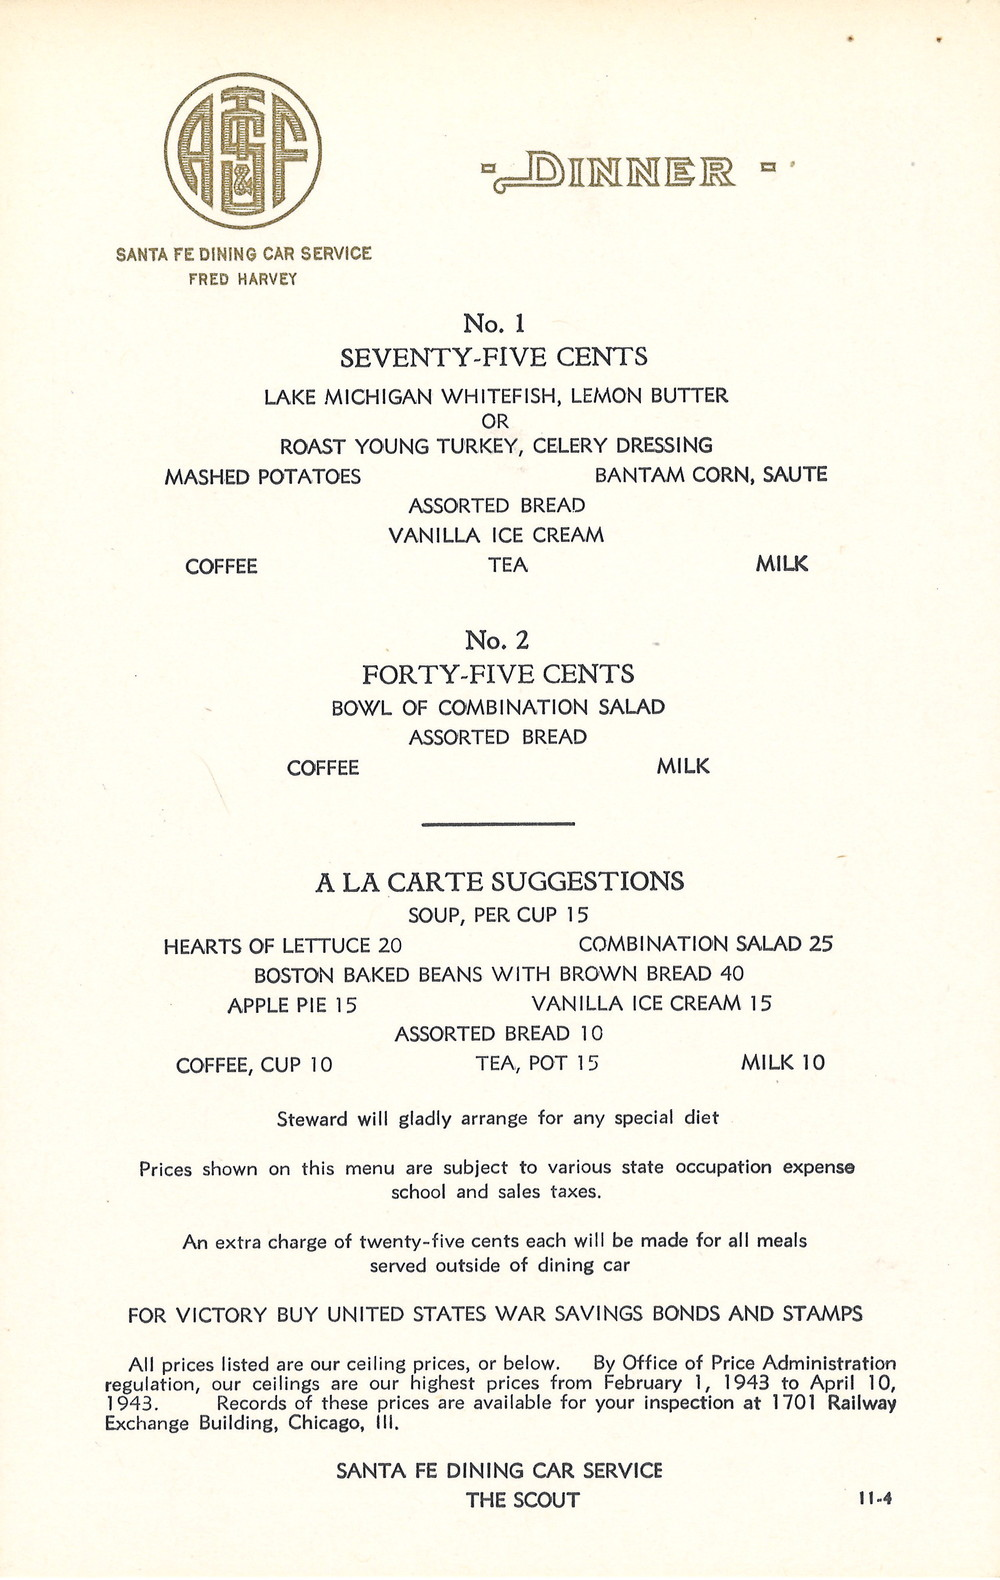 Santa Fe The Scout Dining Car Service Menu.jpg